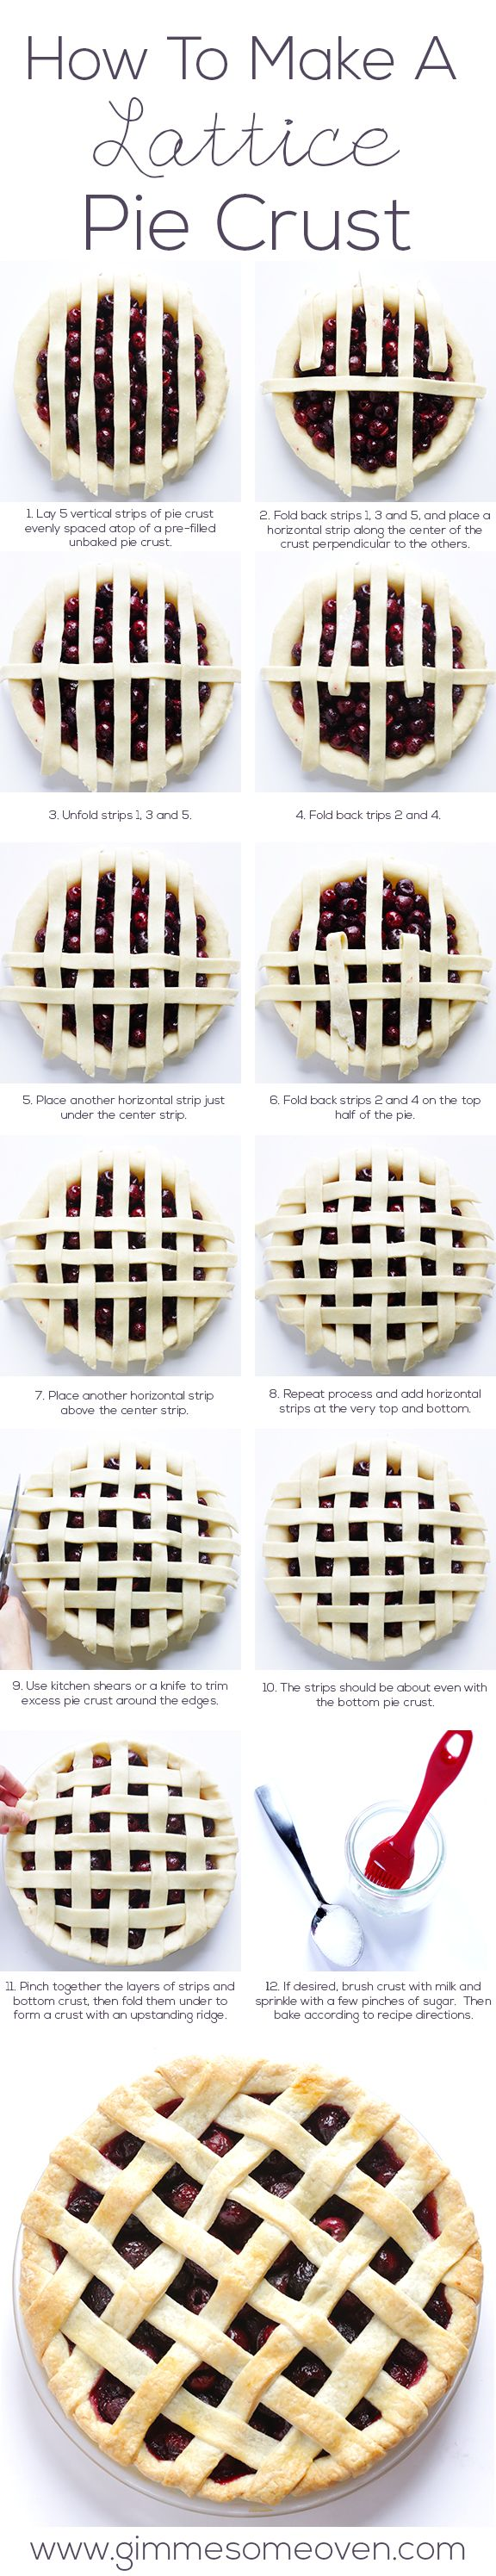 How To Make A Lattice Pie Crust -- It is MUCH easier than you might think!  Just follow our step-by-step instructions for a lovely pie. | gimmesomeoven.com #dessert #diy